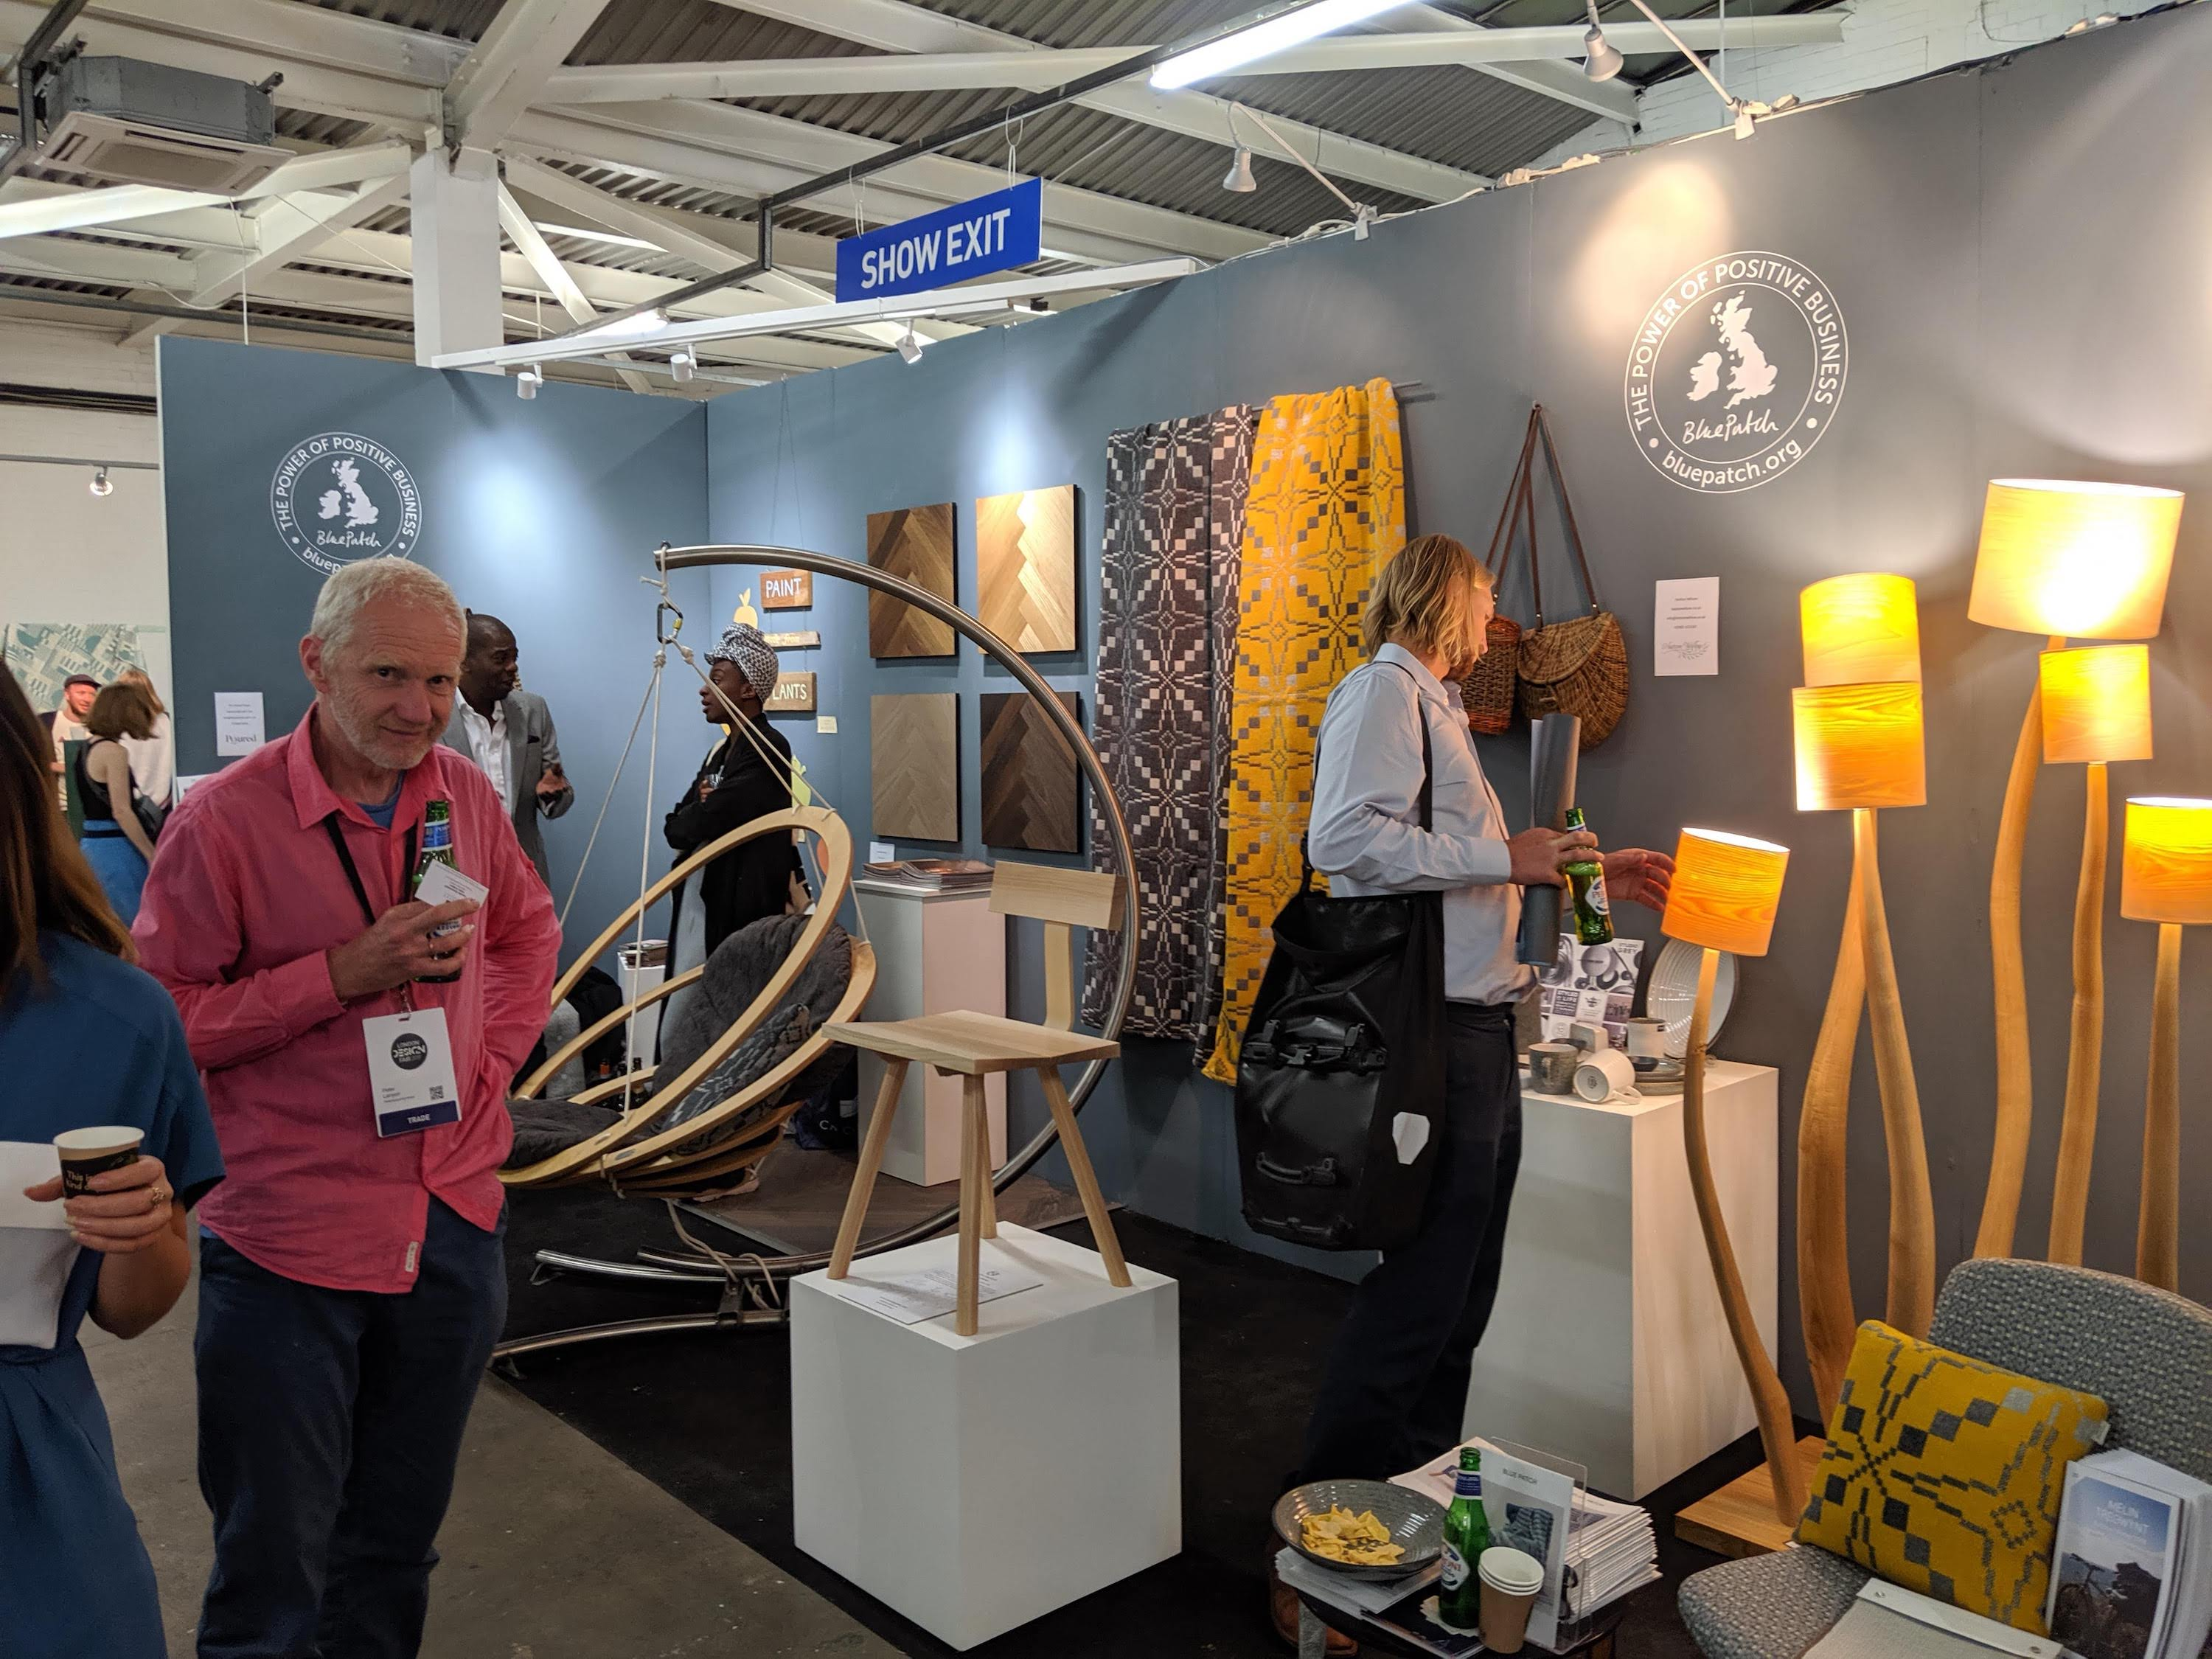 Opening party on the Blue Patch designer furniture stand, at London Design Fair 2019